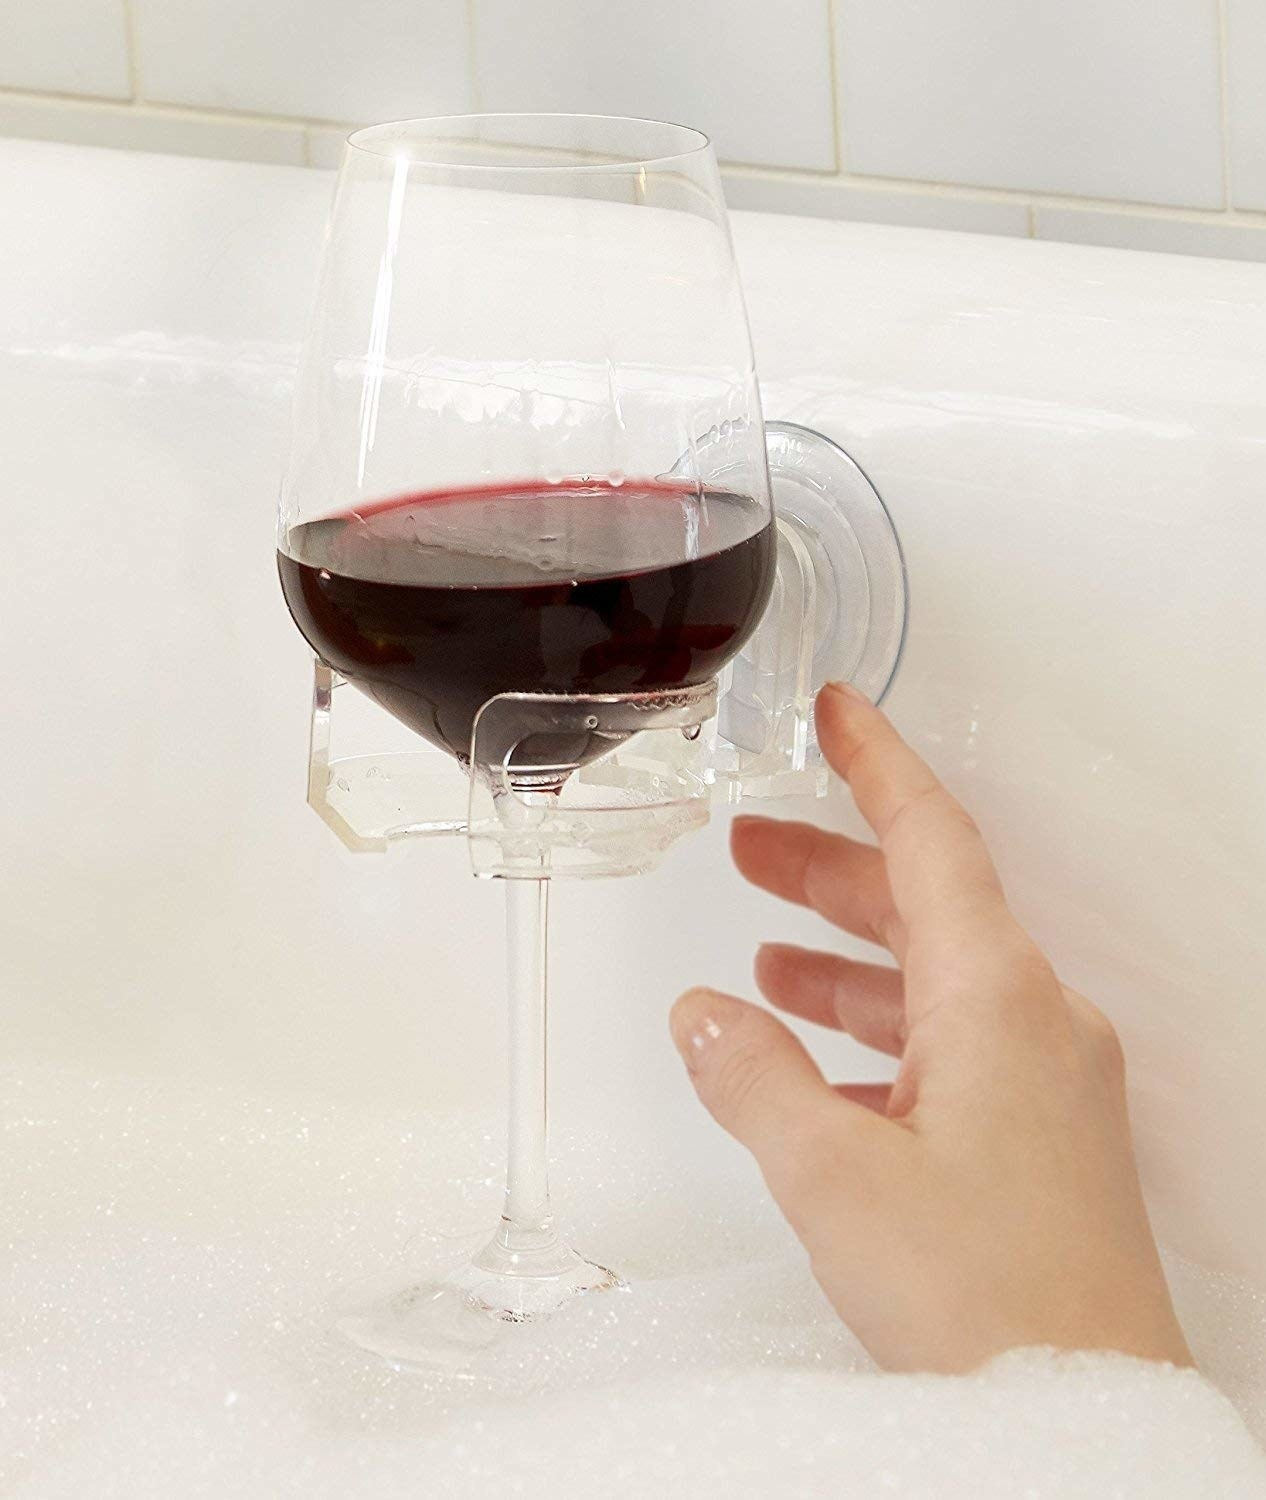 Model reaching for wine glass placed in the portable suction cupholder